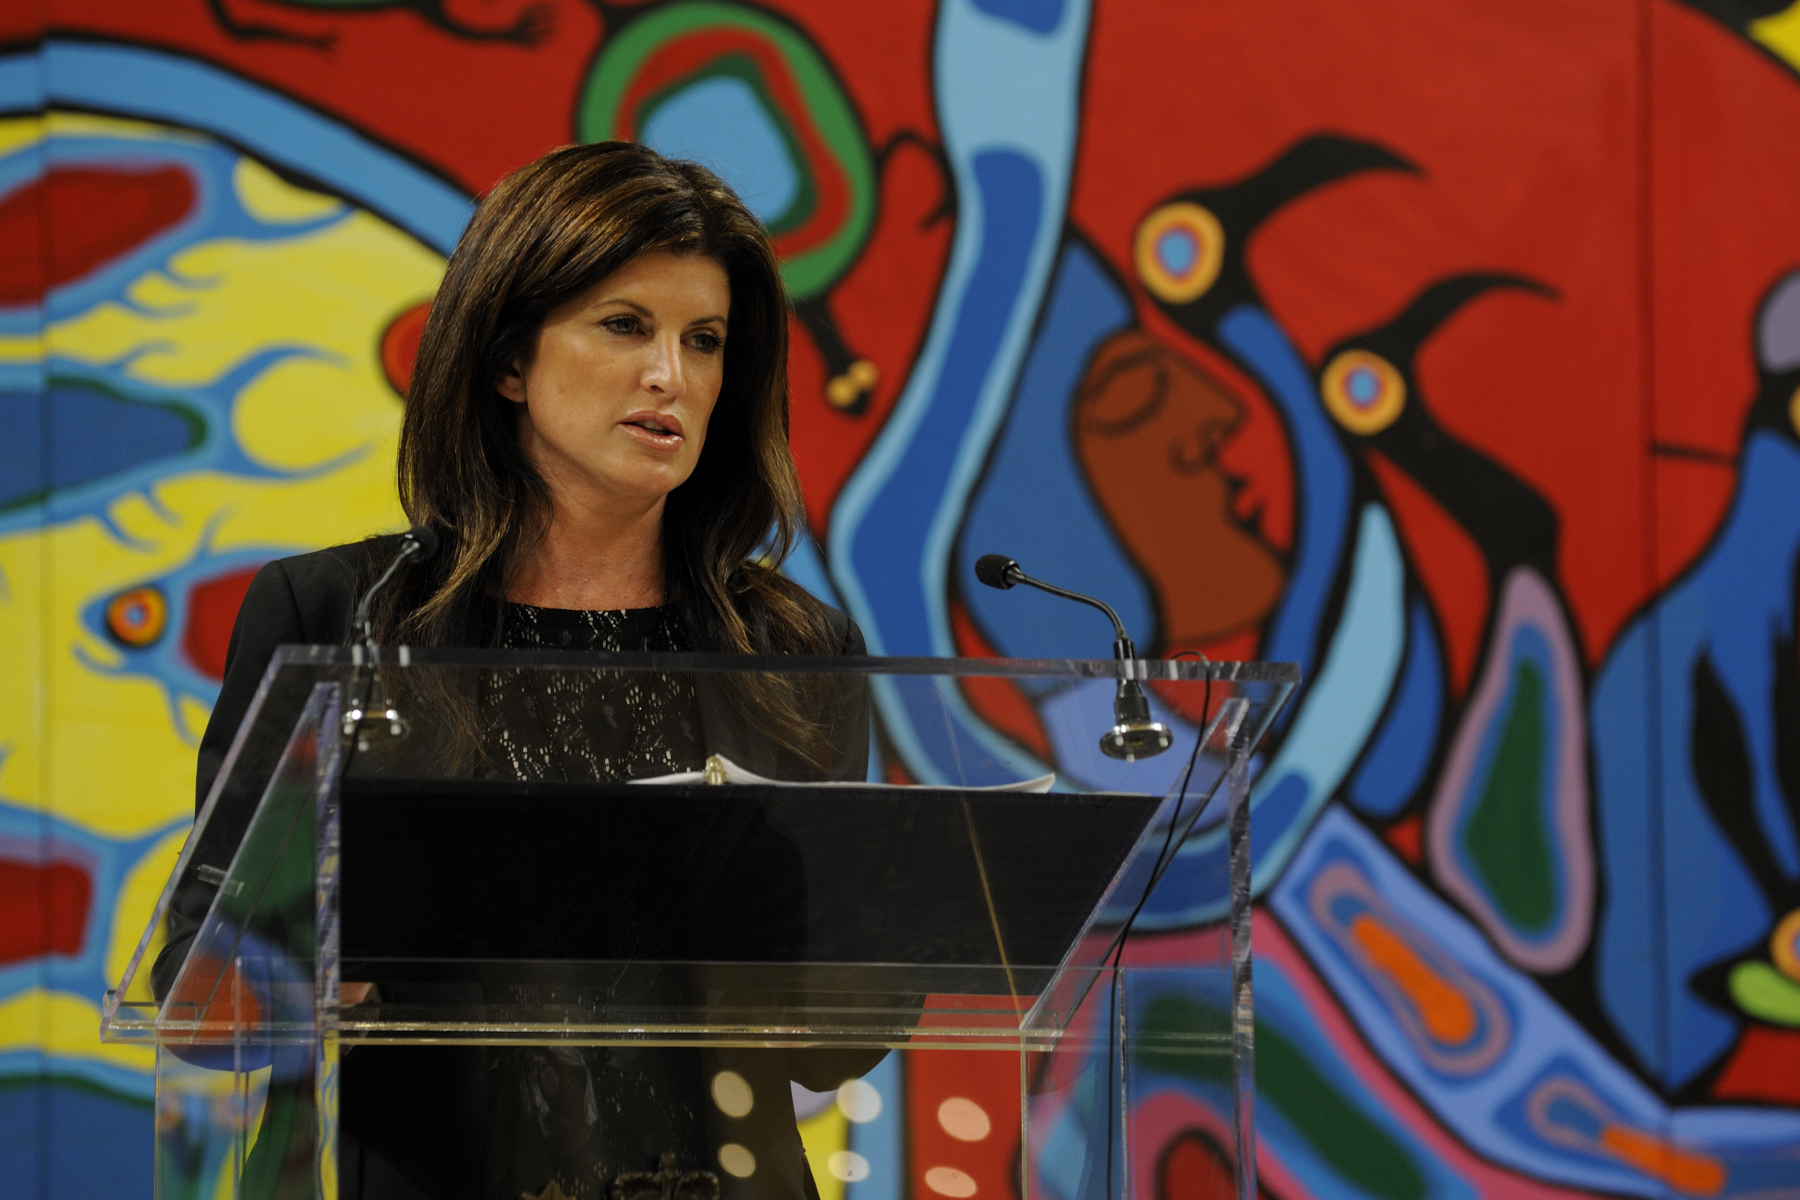 Rona Ambrose, Minister for the Status of Women, thanked the women for speaking out.